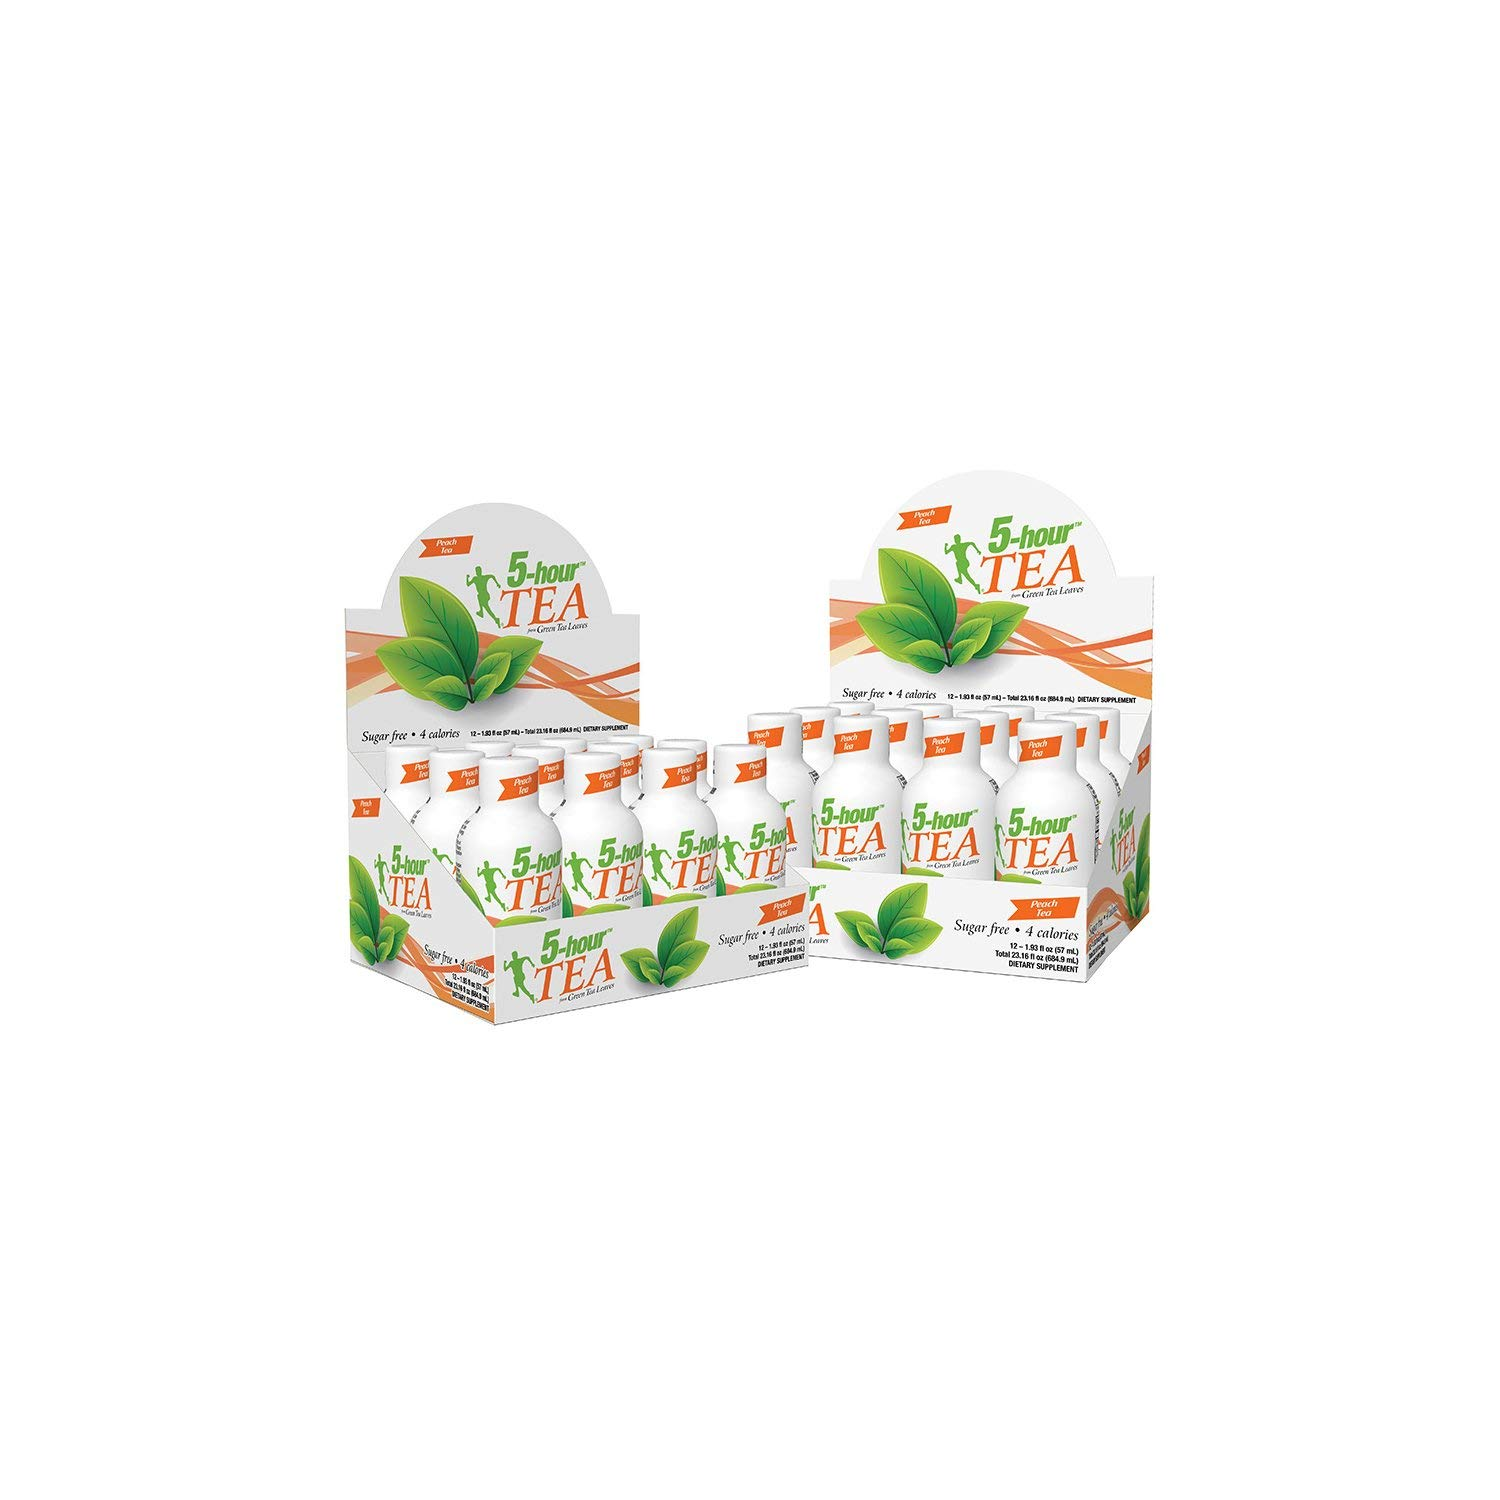 5-hour Green TEA - Peach Flavored - 24 Count by 5-Hours (Image #2)